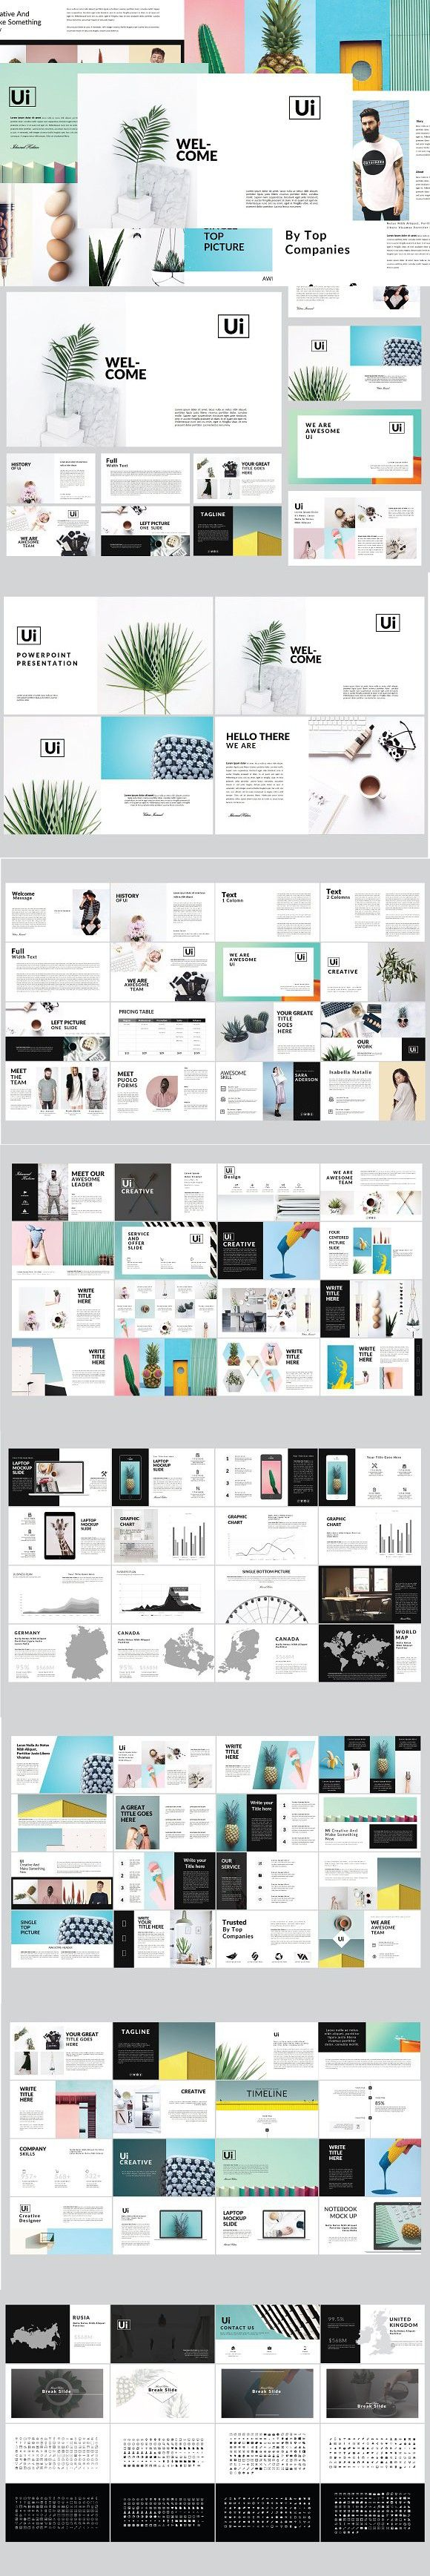 Ui MNML Multipurpose Keynote. Presentation Templates